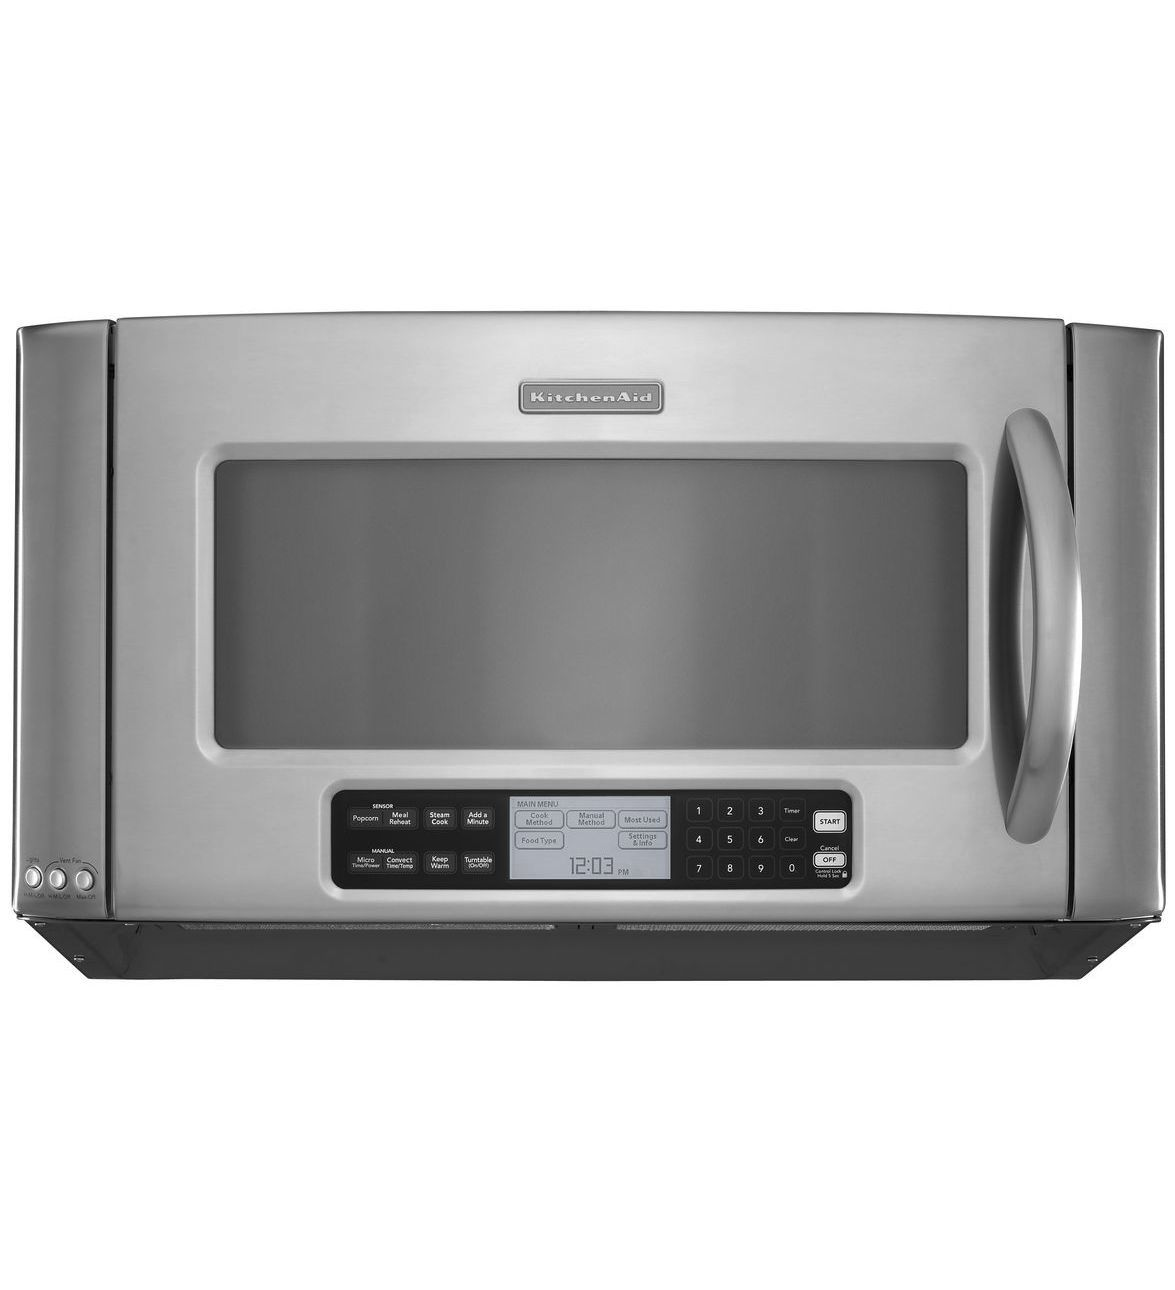 Electric oven / microwave / built-in - KHHC2090SSS - KitchenAid